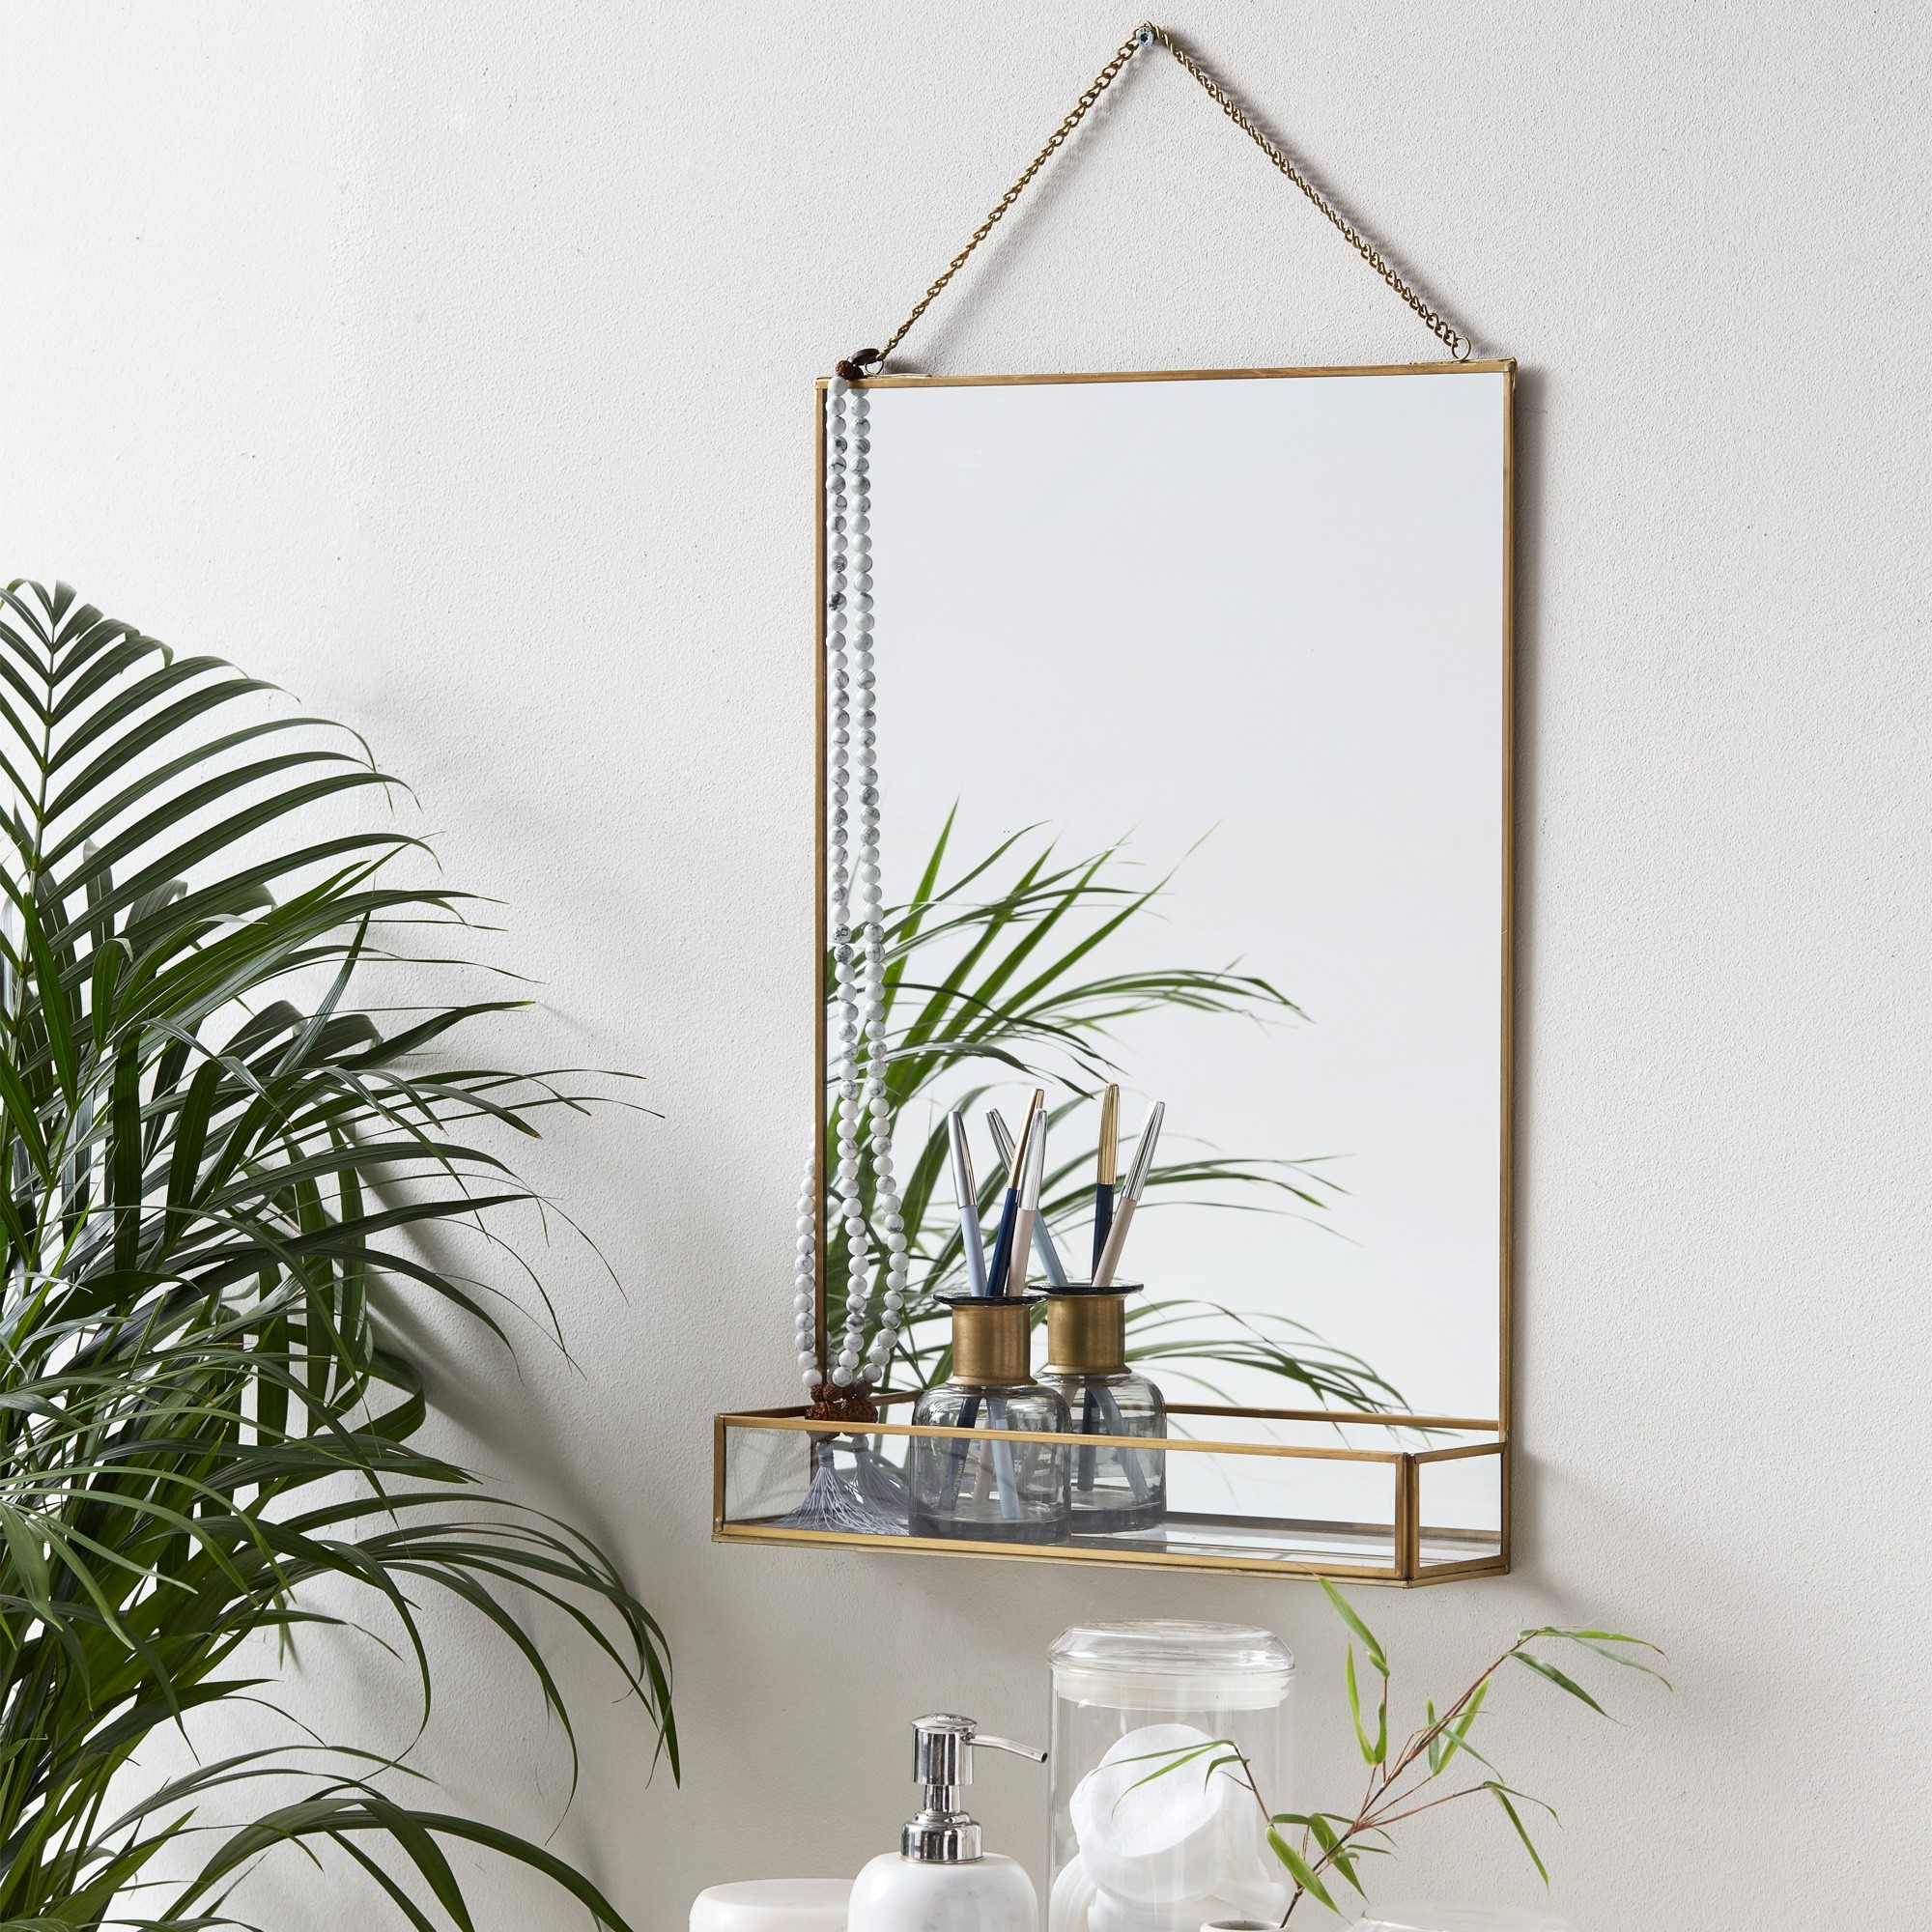 Most Up To Date Chain Hanging Wall Mirror With Shelf Intended For Hanging Wall Mirrors (View 11 of 20)